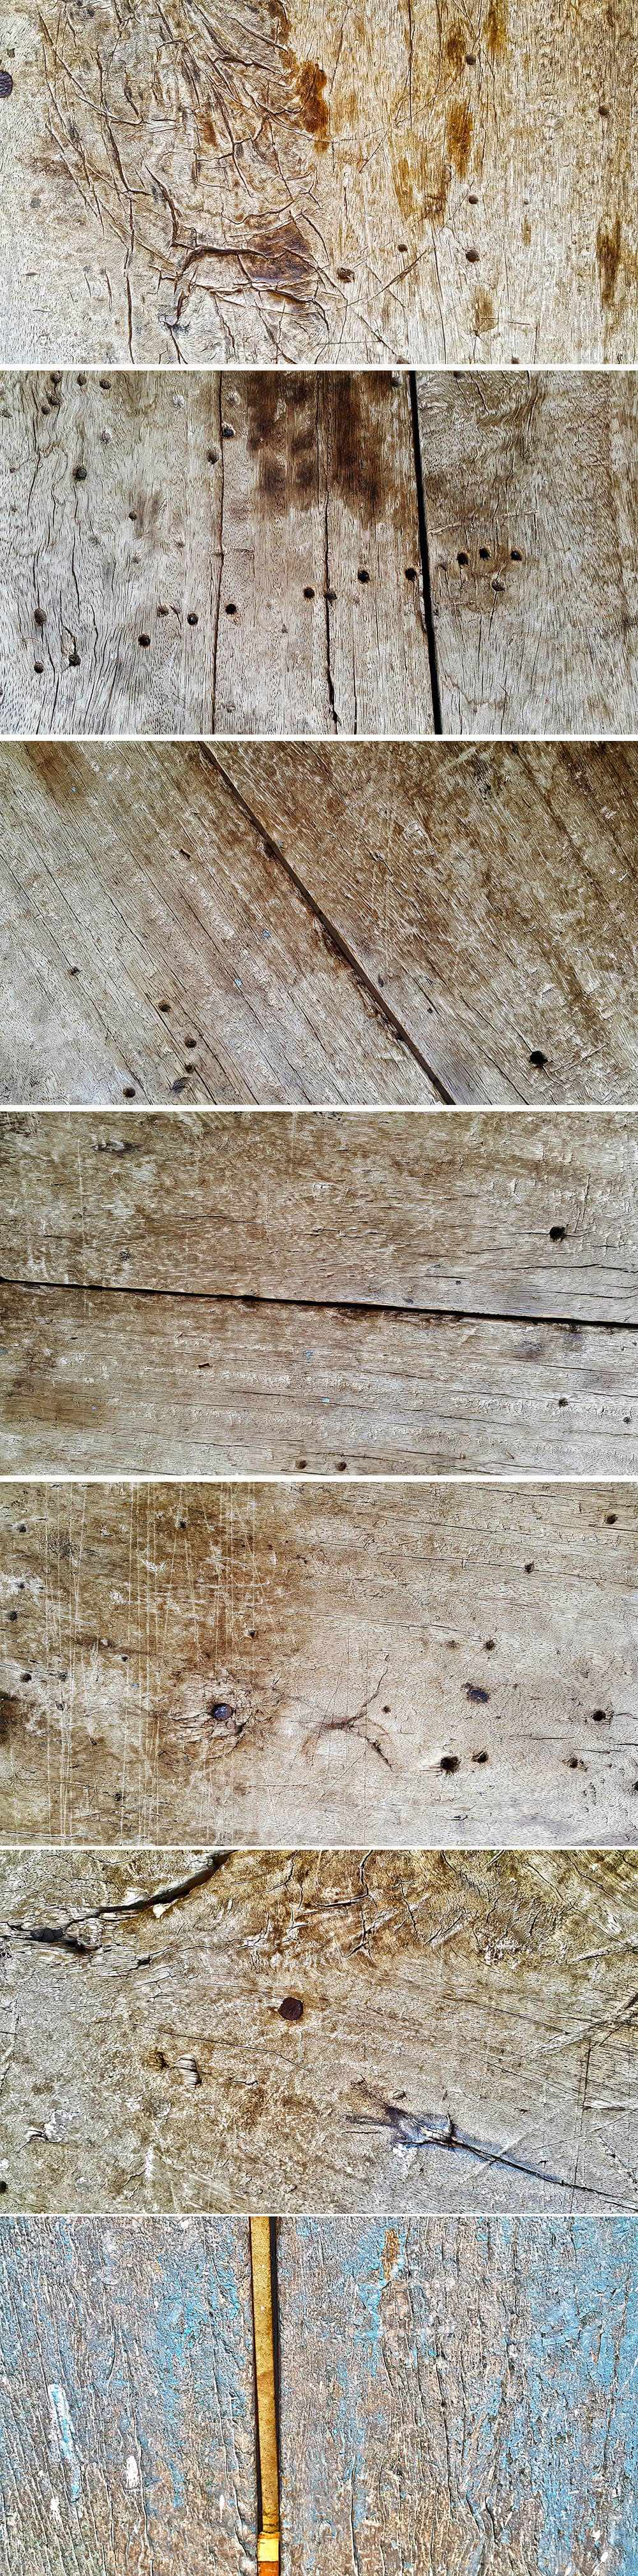 Free-Bois-Textures-Full-View2